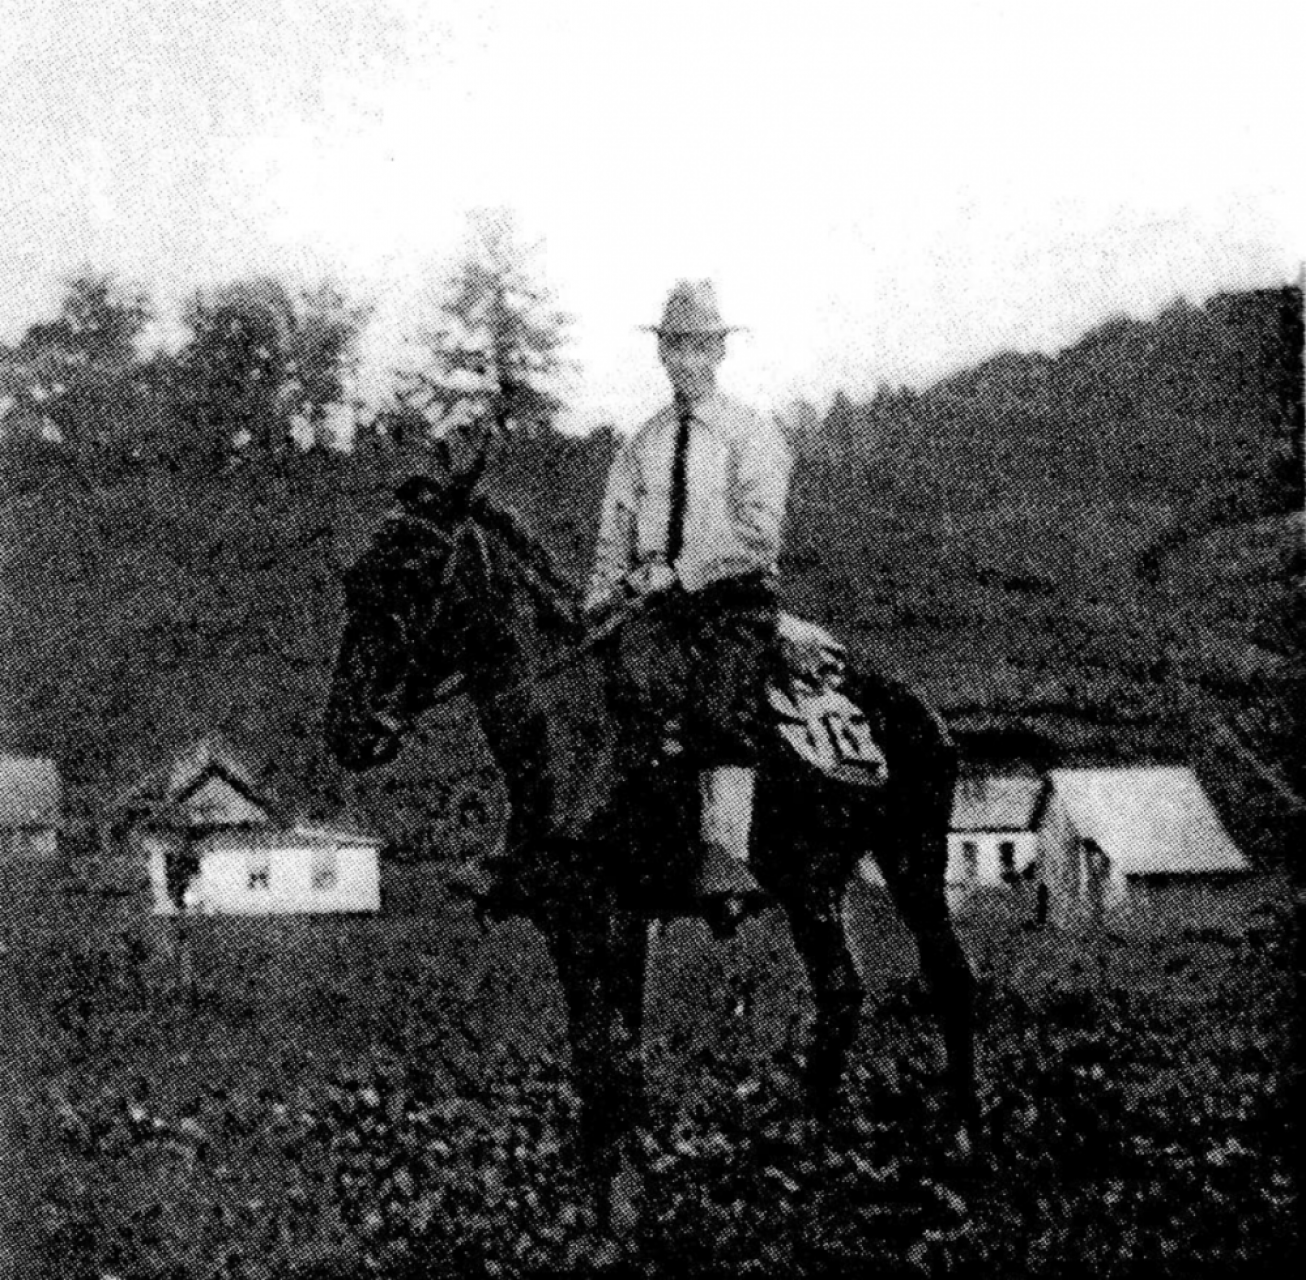 A black and white photo of a man on a horse.